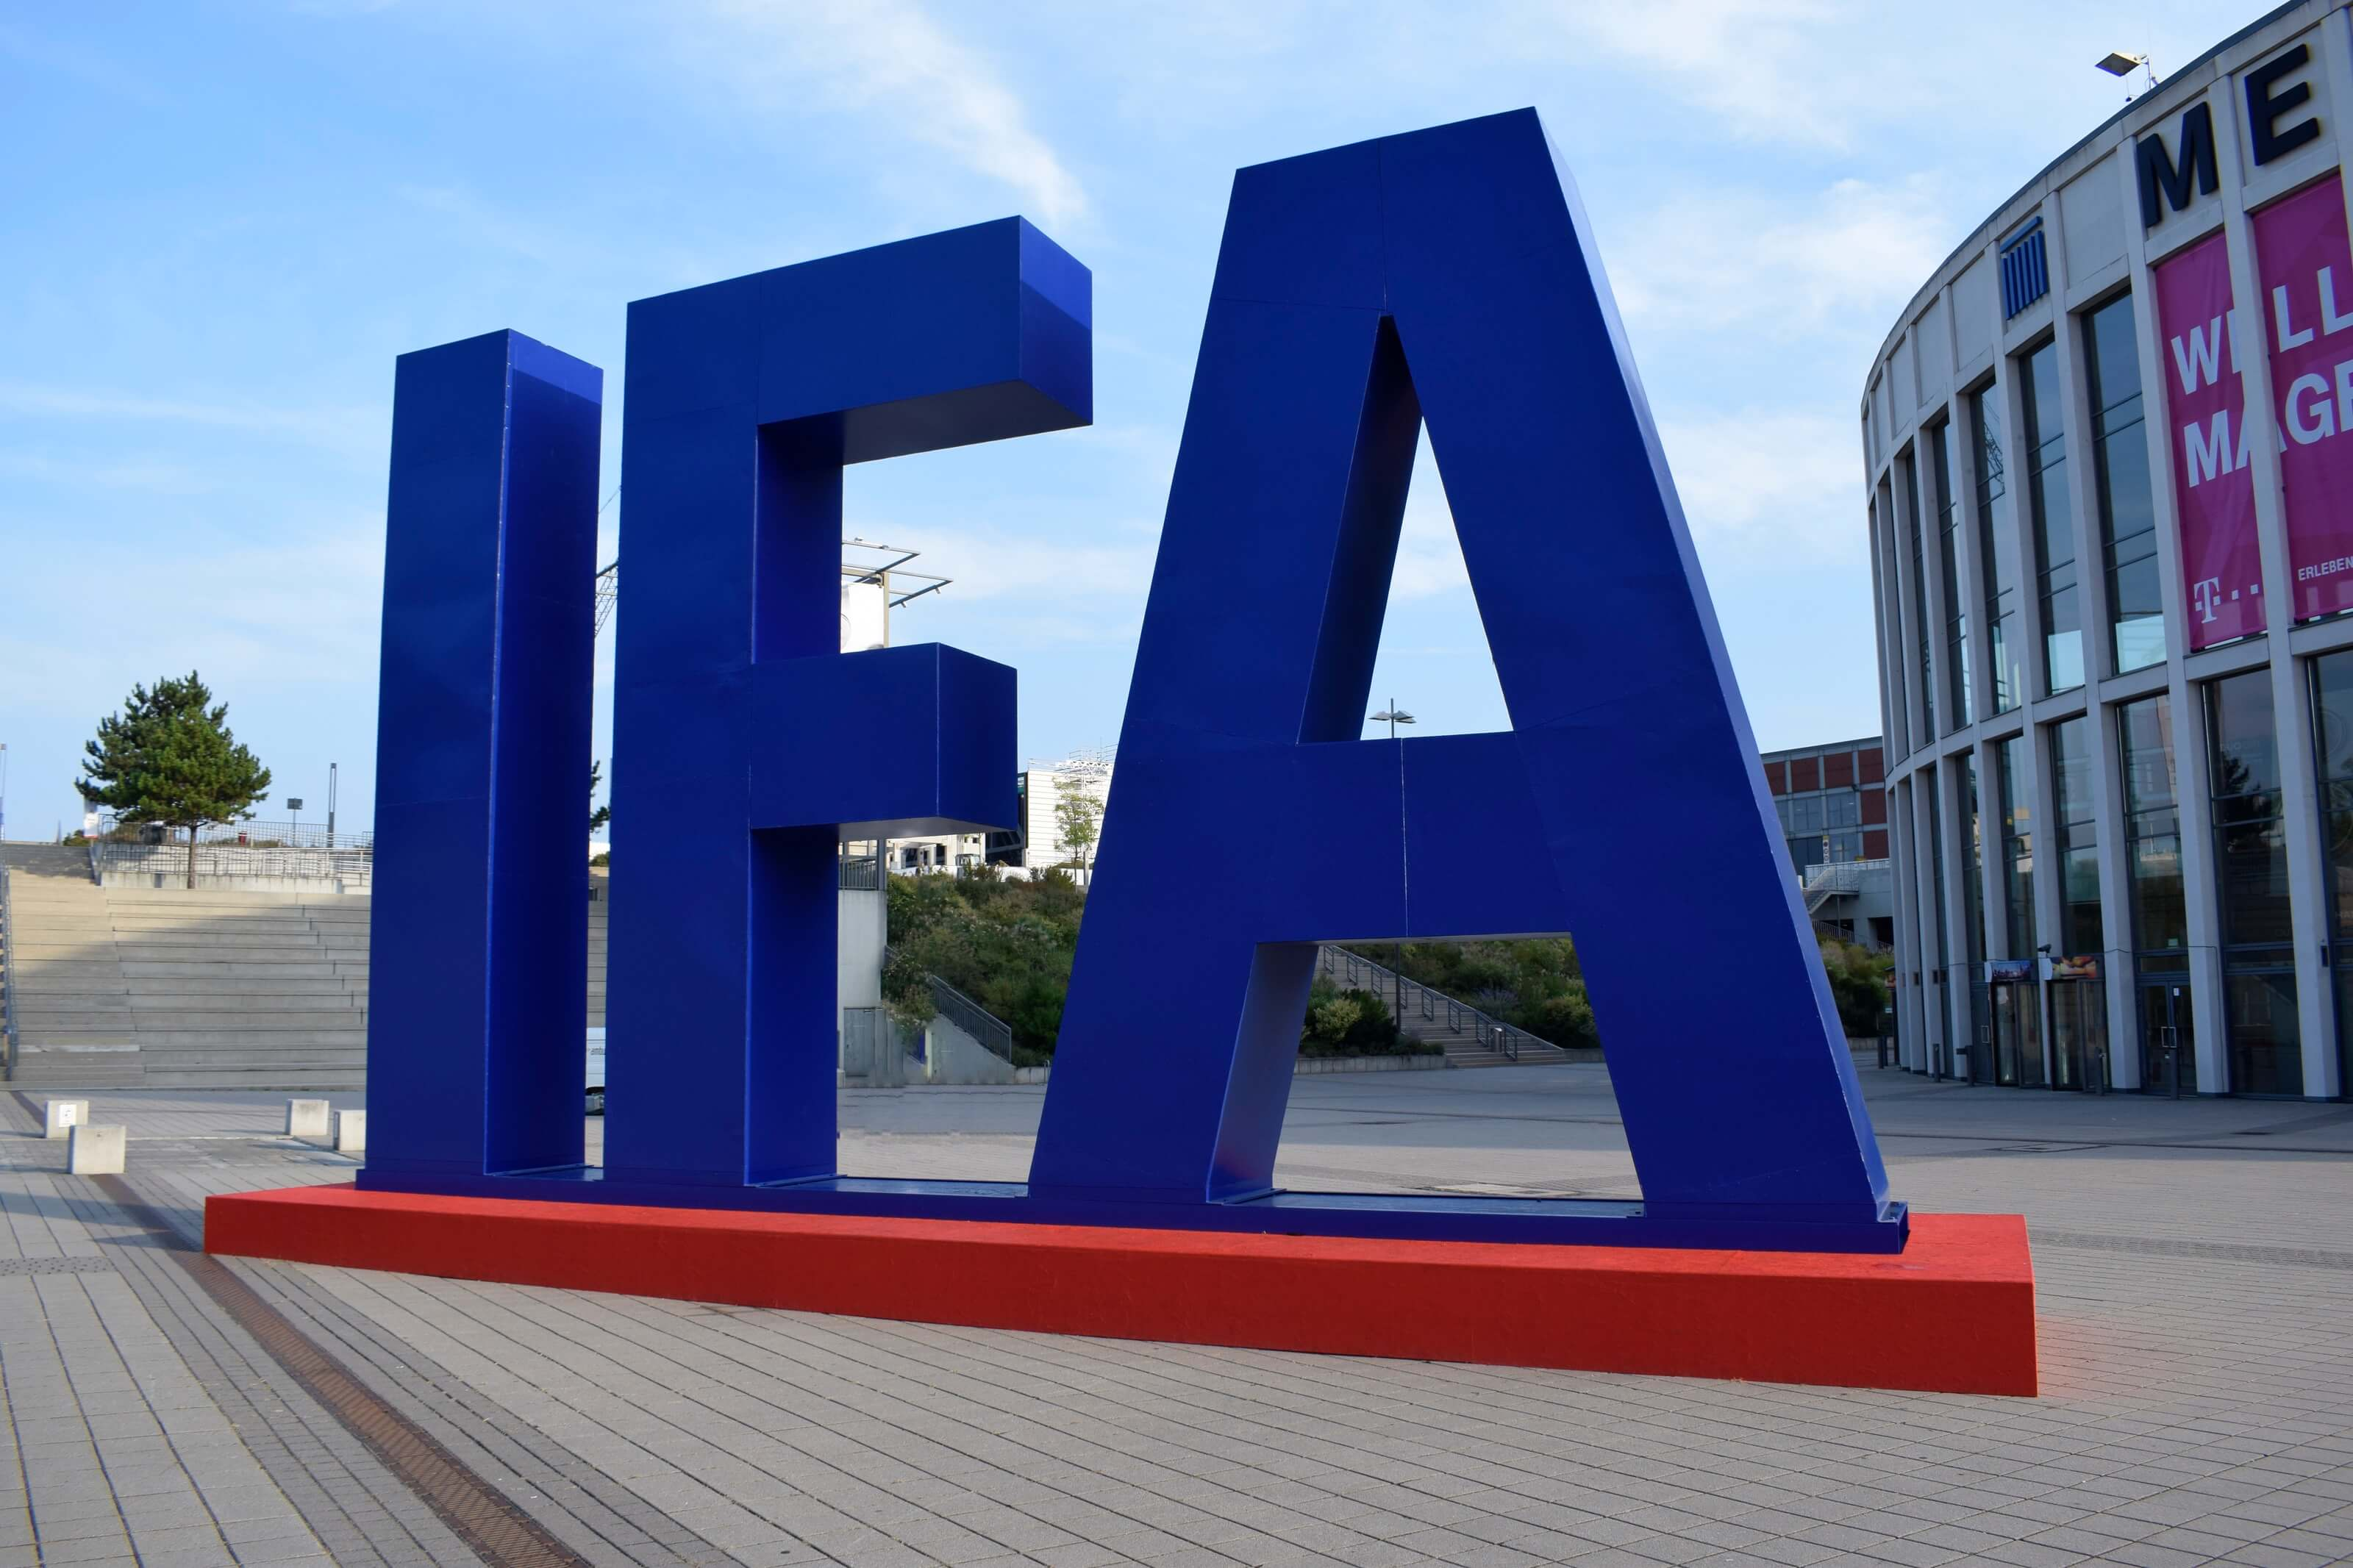 Berlin's IFA 2021 will be a 'full-scale return' for the in-person event this September